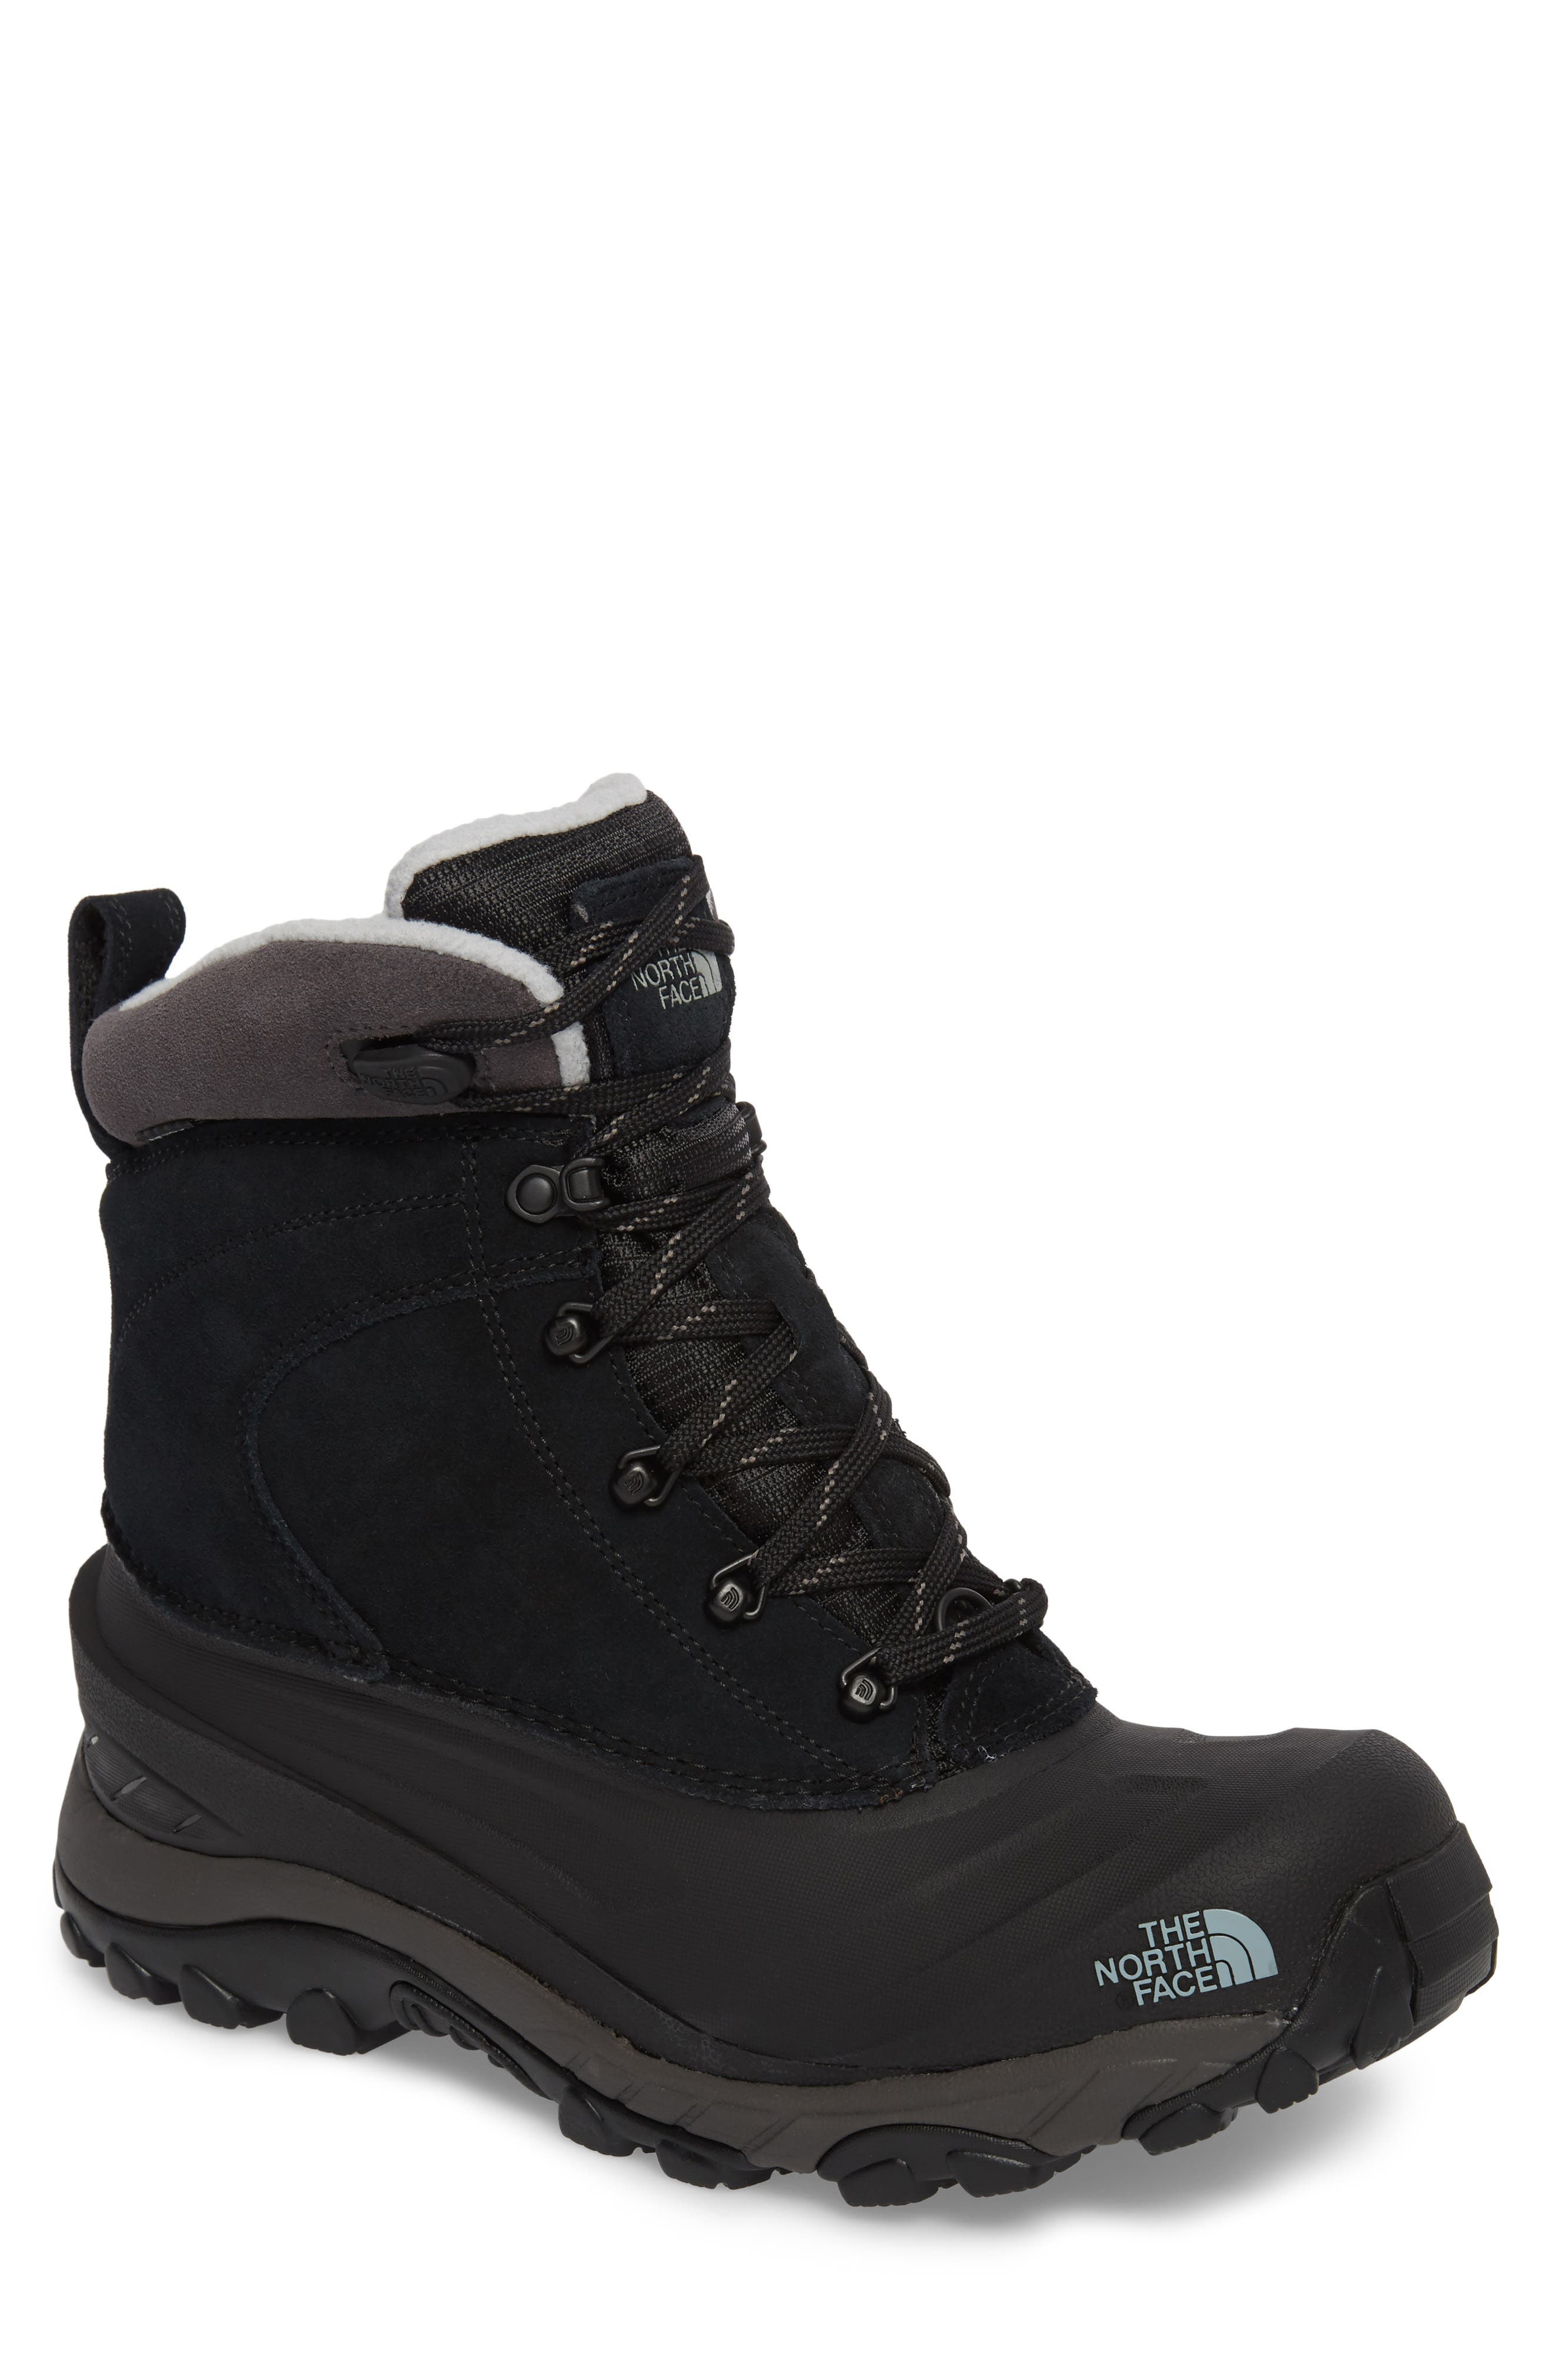 The North Face Chilkat Iii Waterproof Insulated Boot, Black